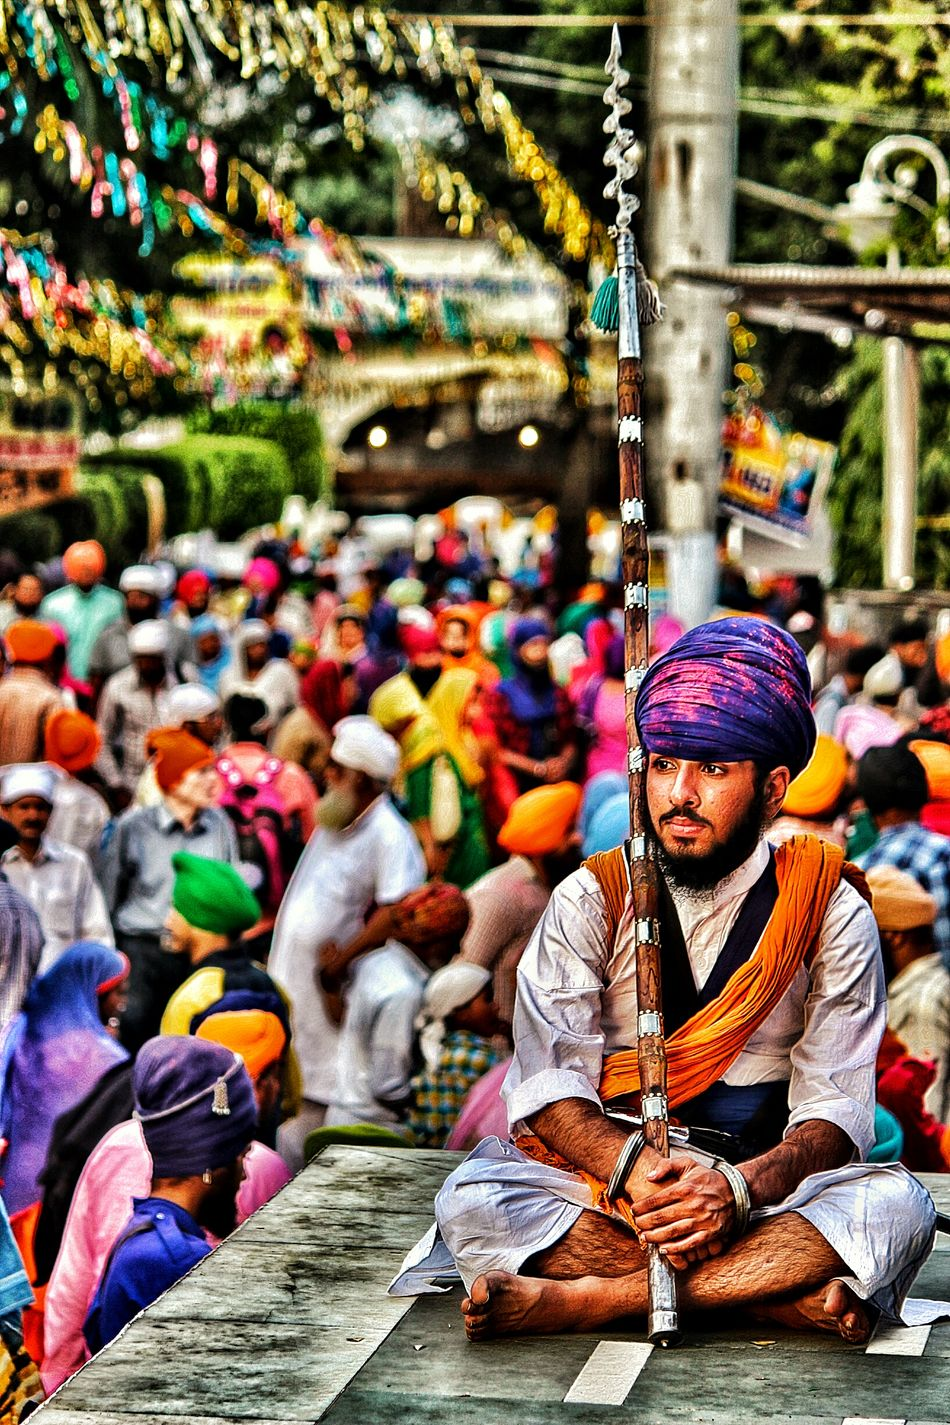 Colour Of Life Sikhism ANANDPURSAHIB Birthplaceofkhalsa EyeEmNewHere